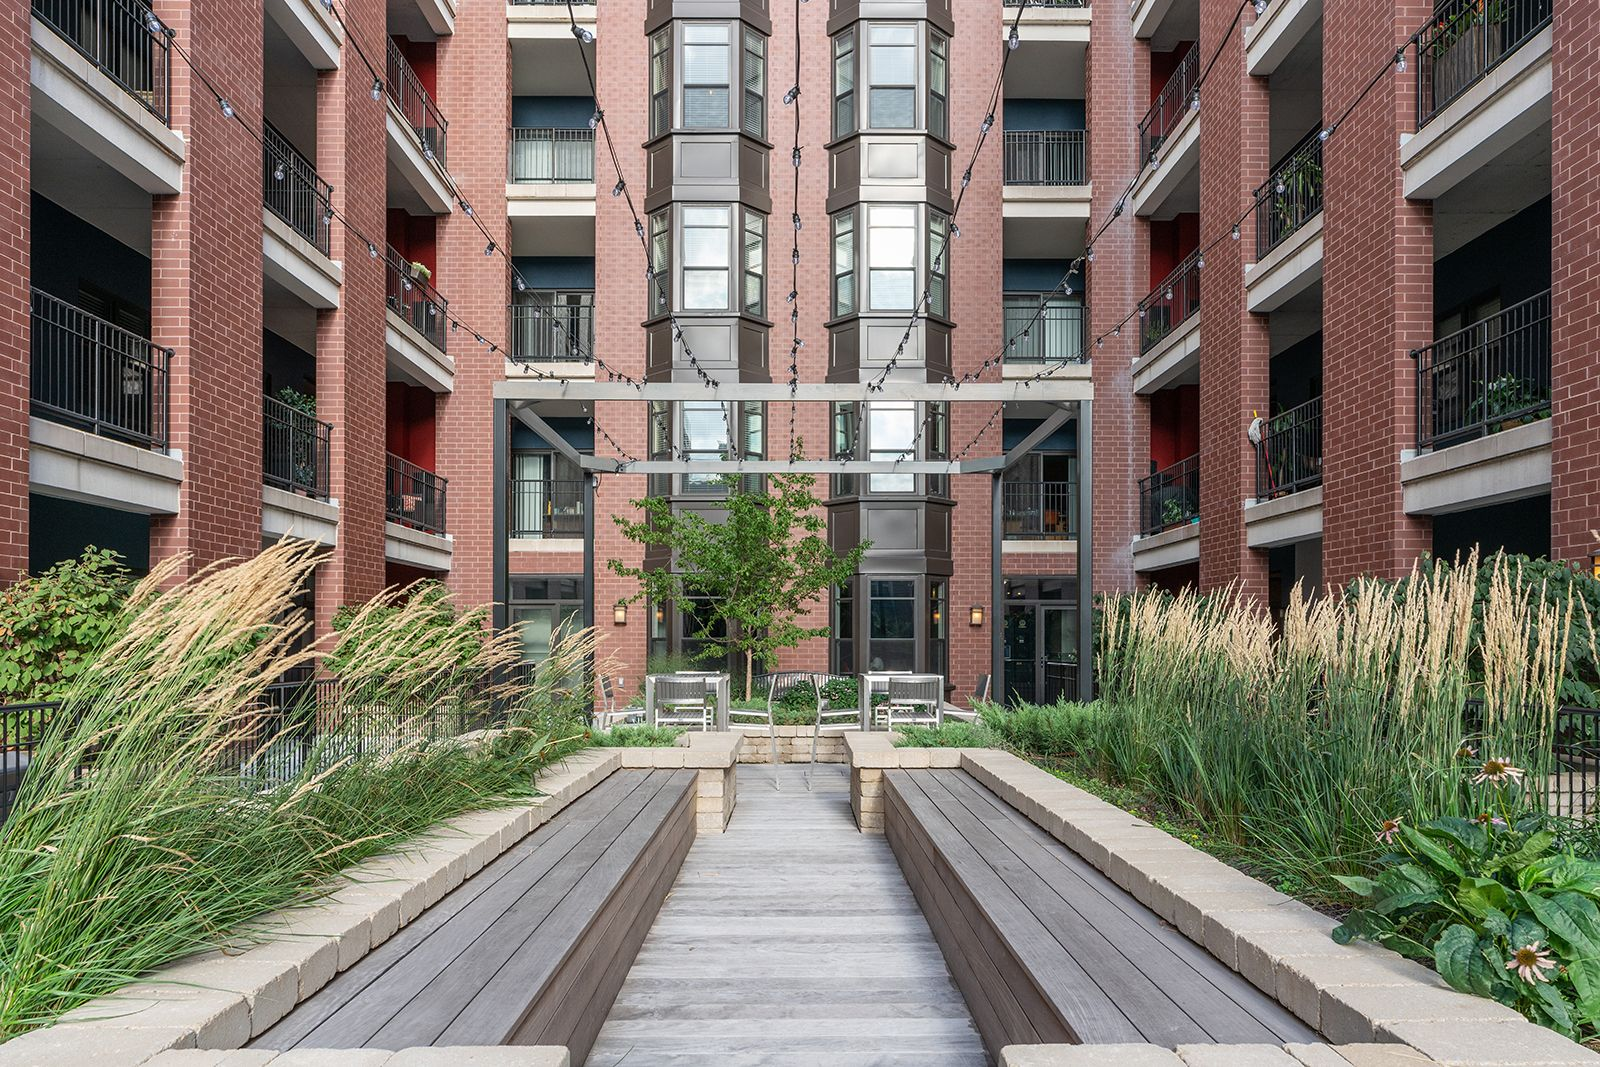 Keep Calm In Our Peaceful Zen Garden Arrivesouthloop Ihavearrived Amenities Chicago Il Apartments Pet Friendly Apartments Apartments For Rent Zen Garden